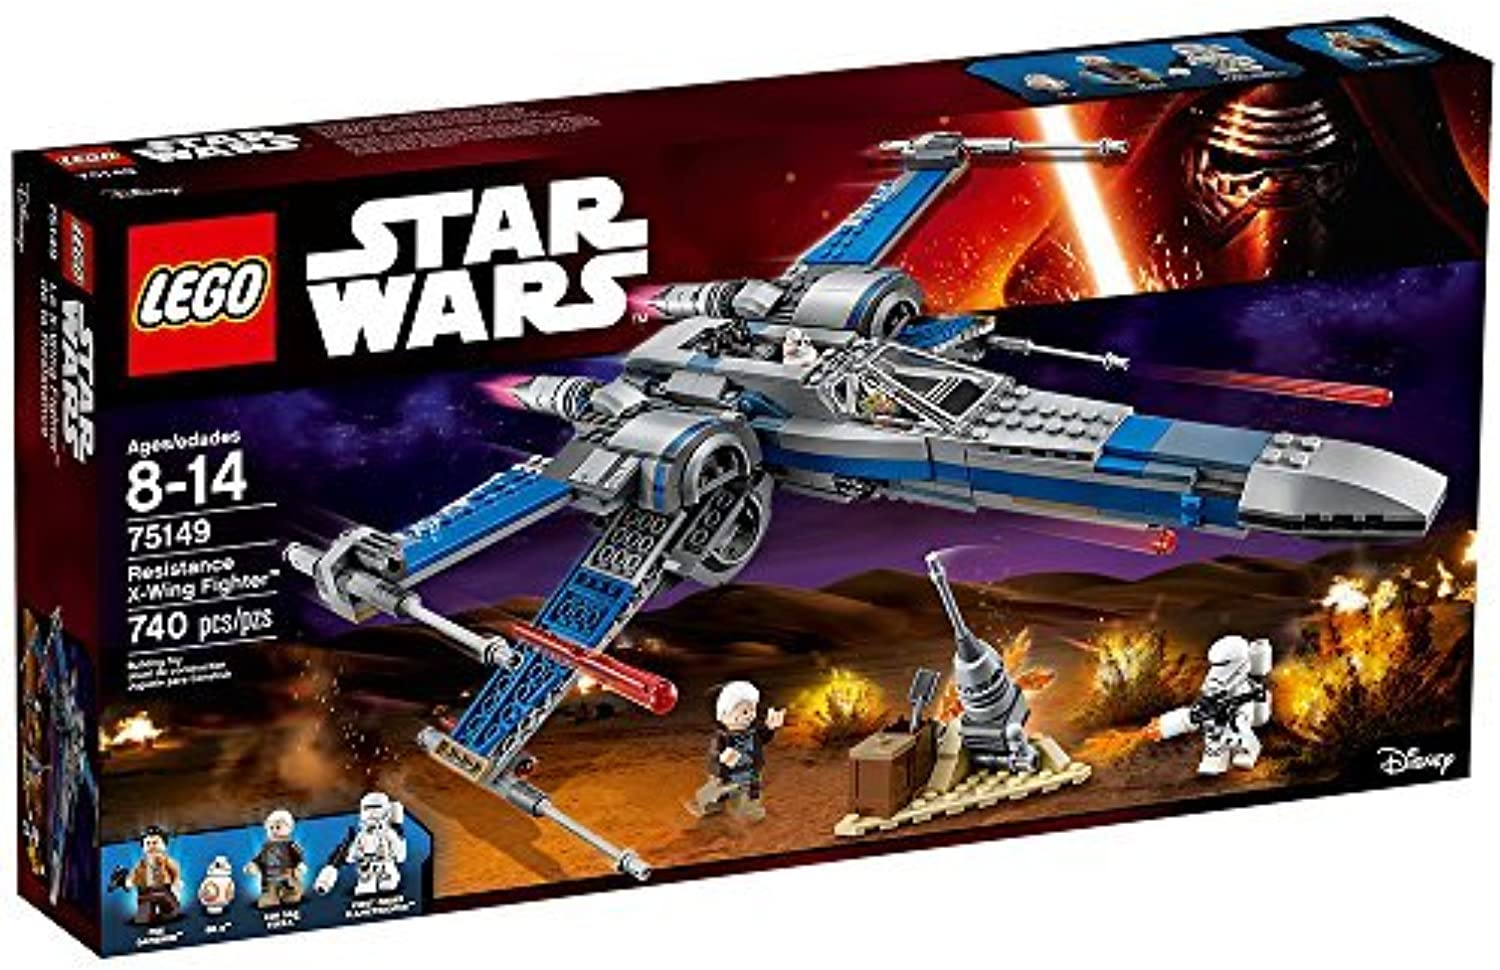 LEGO Star Wars Resistance XWing Fighter 75149